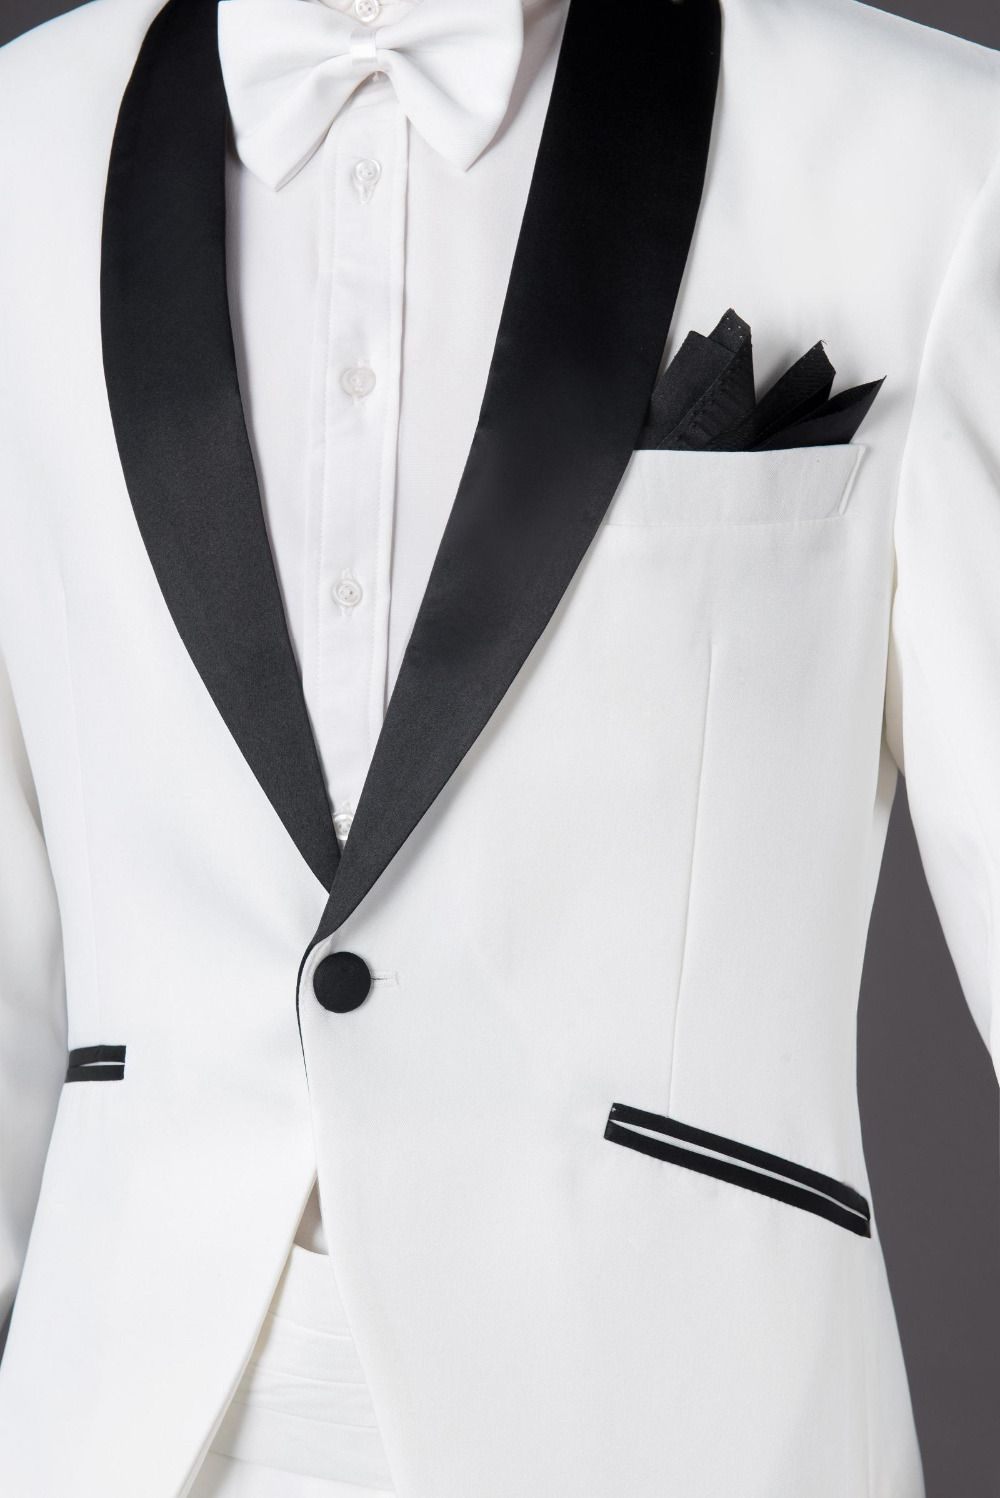 Brand White Tuxedo Jacket Men Suit Tuxedo 2016 New Arrival Mens Slim Black Lapel Suits With Pants Groom Wedding Suits For Men-in Suits from Men's Clothing & Accessories on Aliexpress.com | Alibaba Group